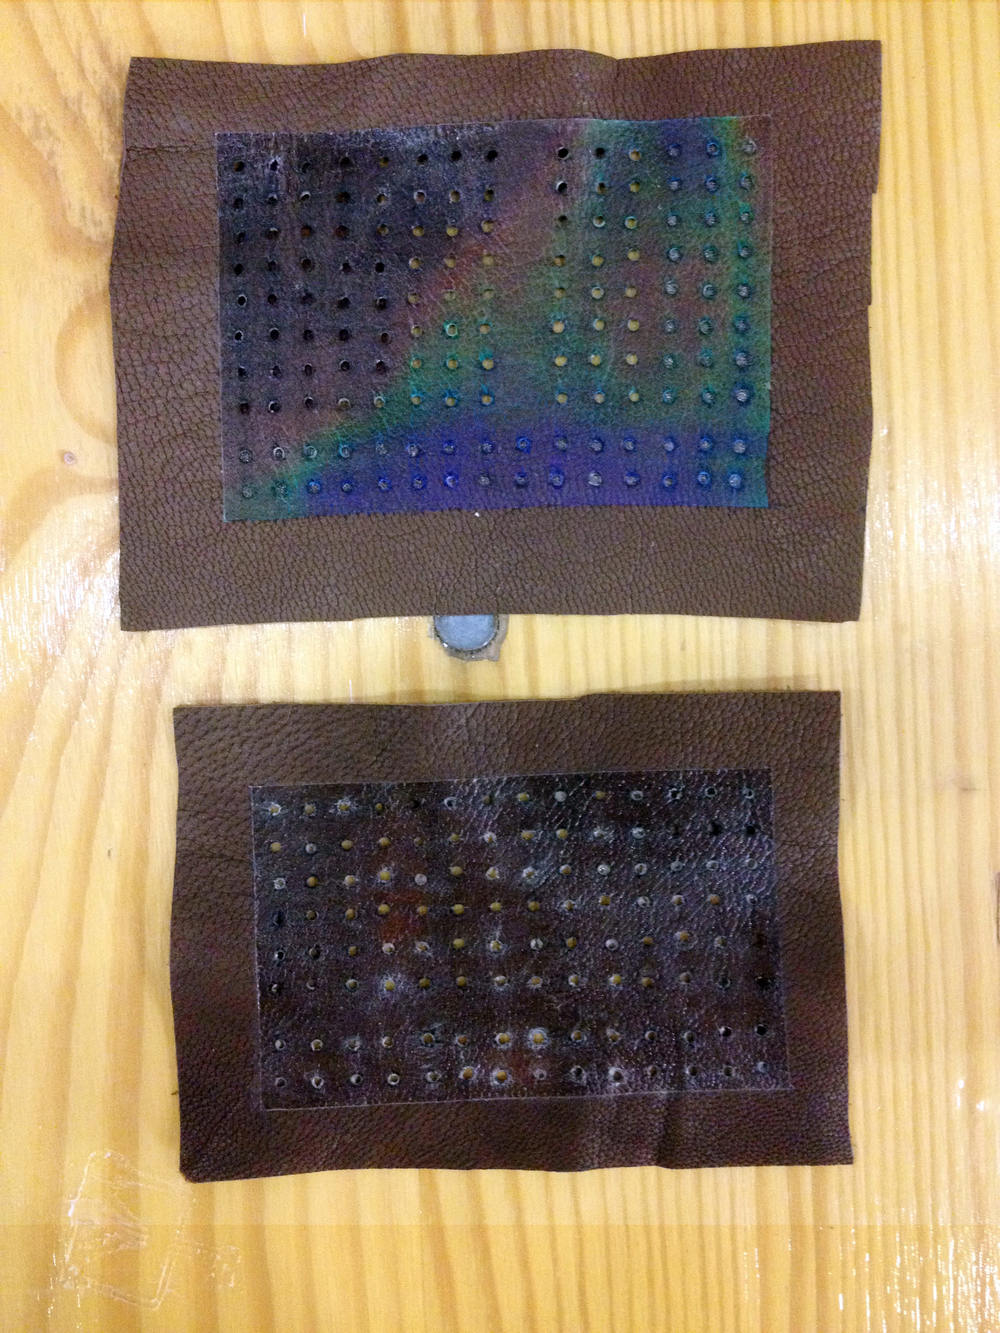 eTextile breadboard. coated with thermochromic liquid crystal to indicate if the surface changes temperature